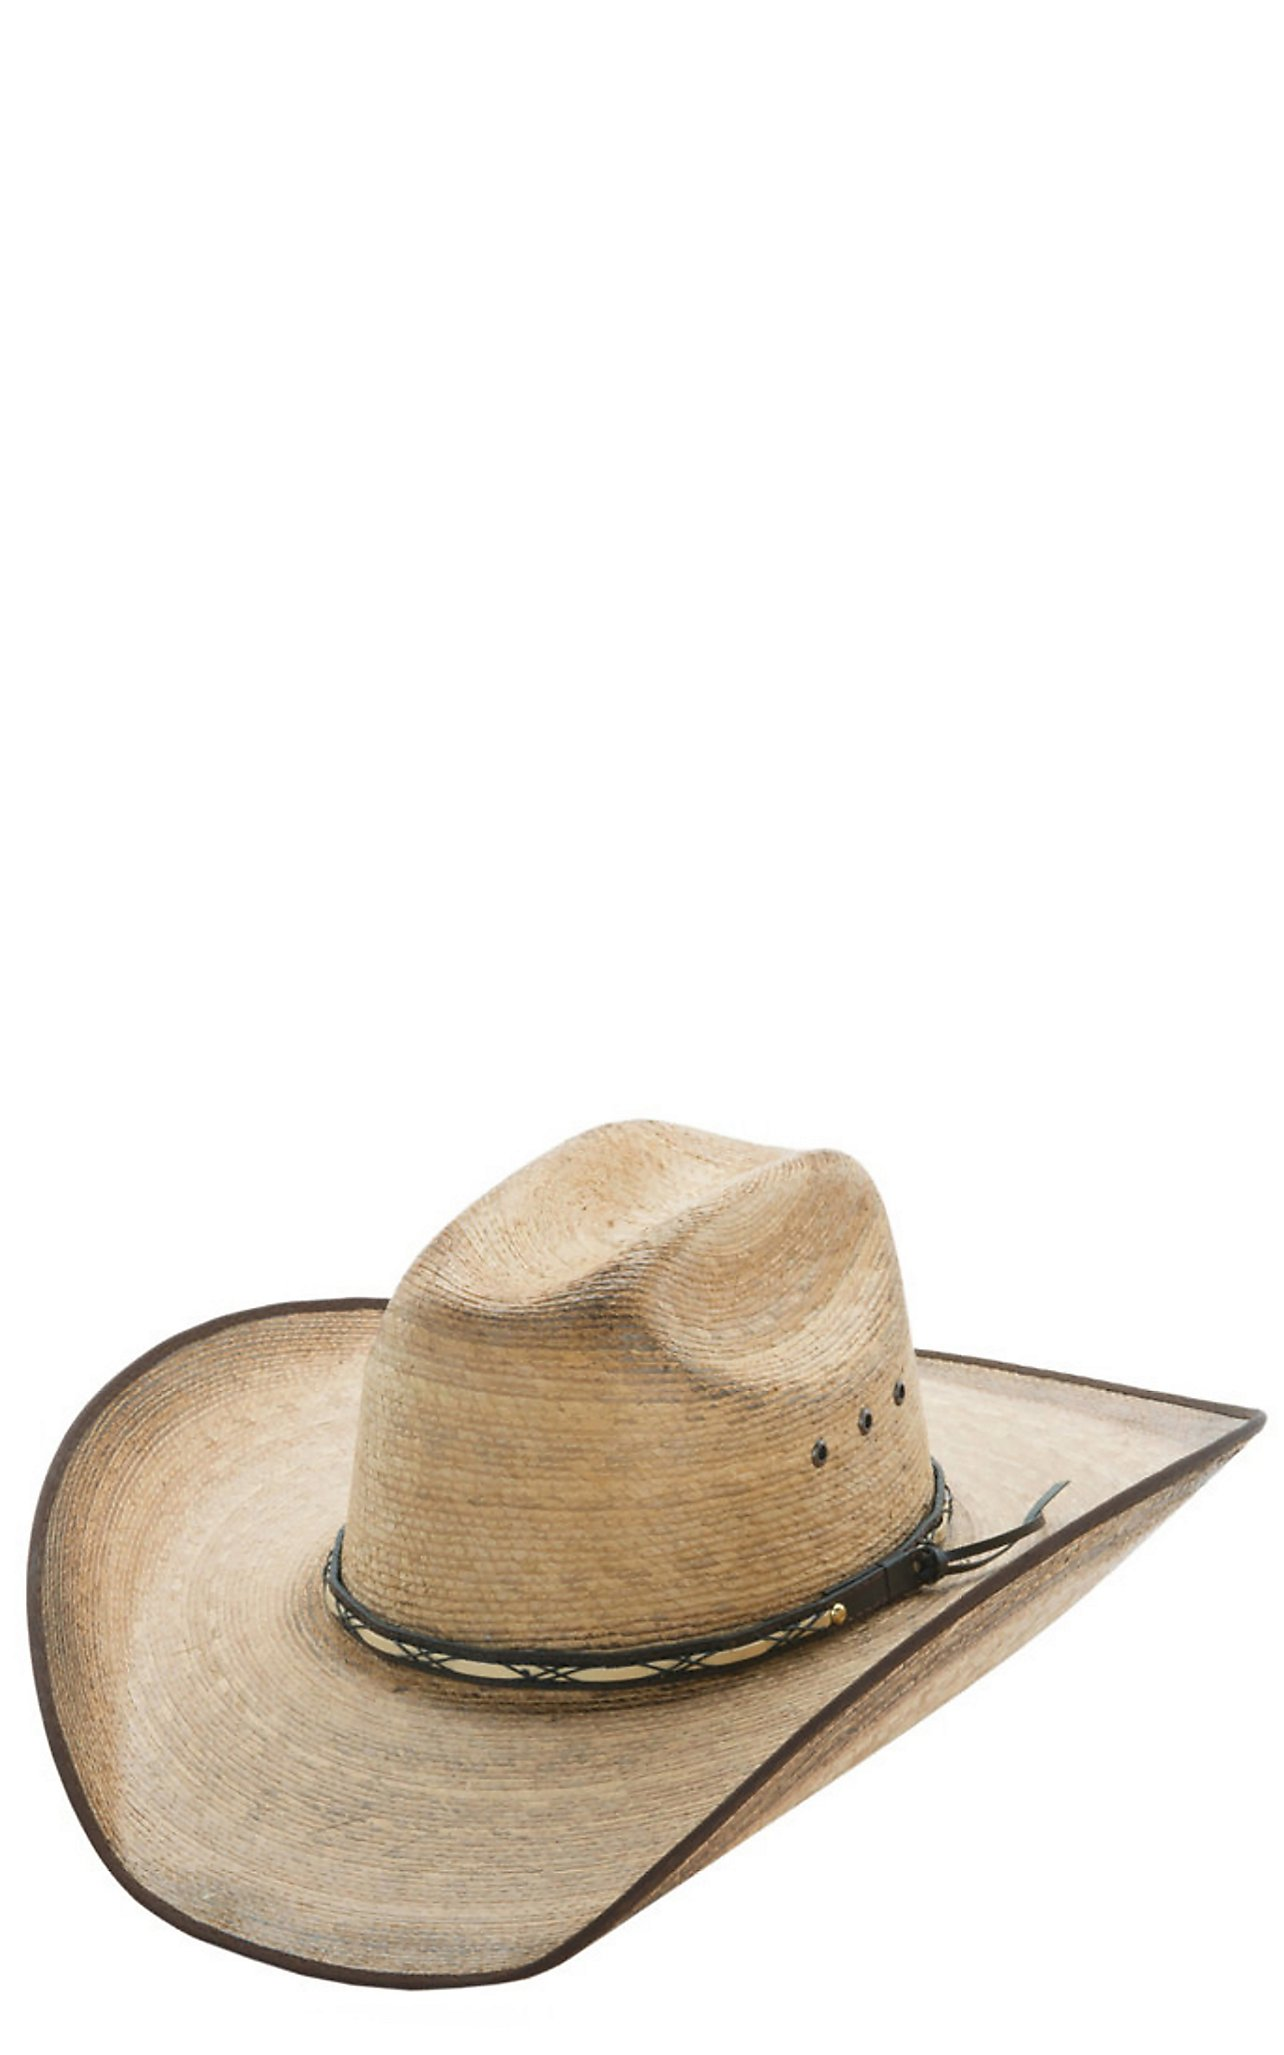 0c6619091c6 Resistol Hats Jason Aldean Amarillo Sky Bound Edge Palm Leaf Cowboy Hat